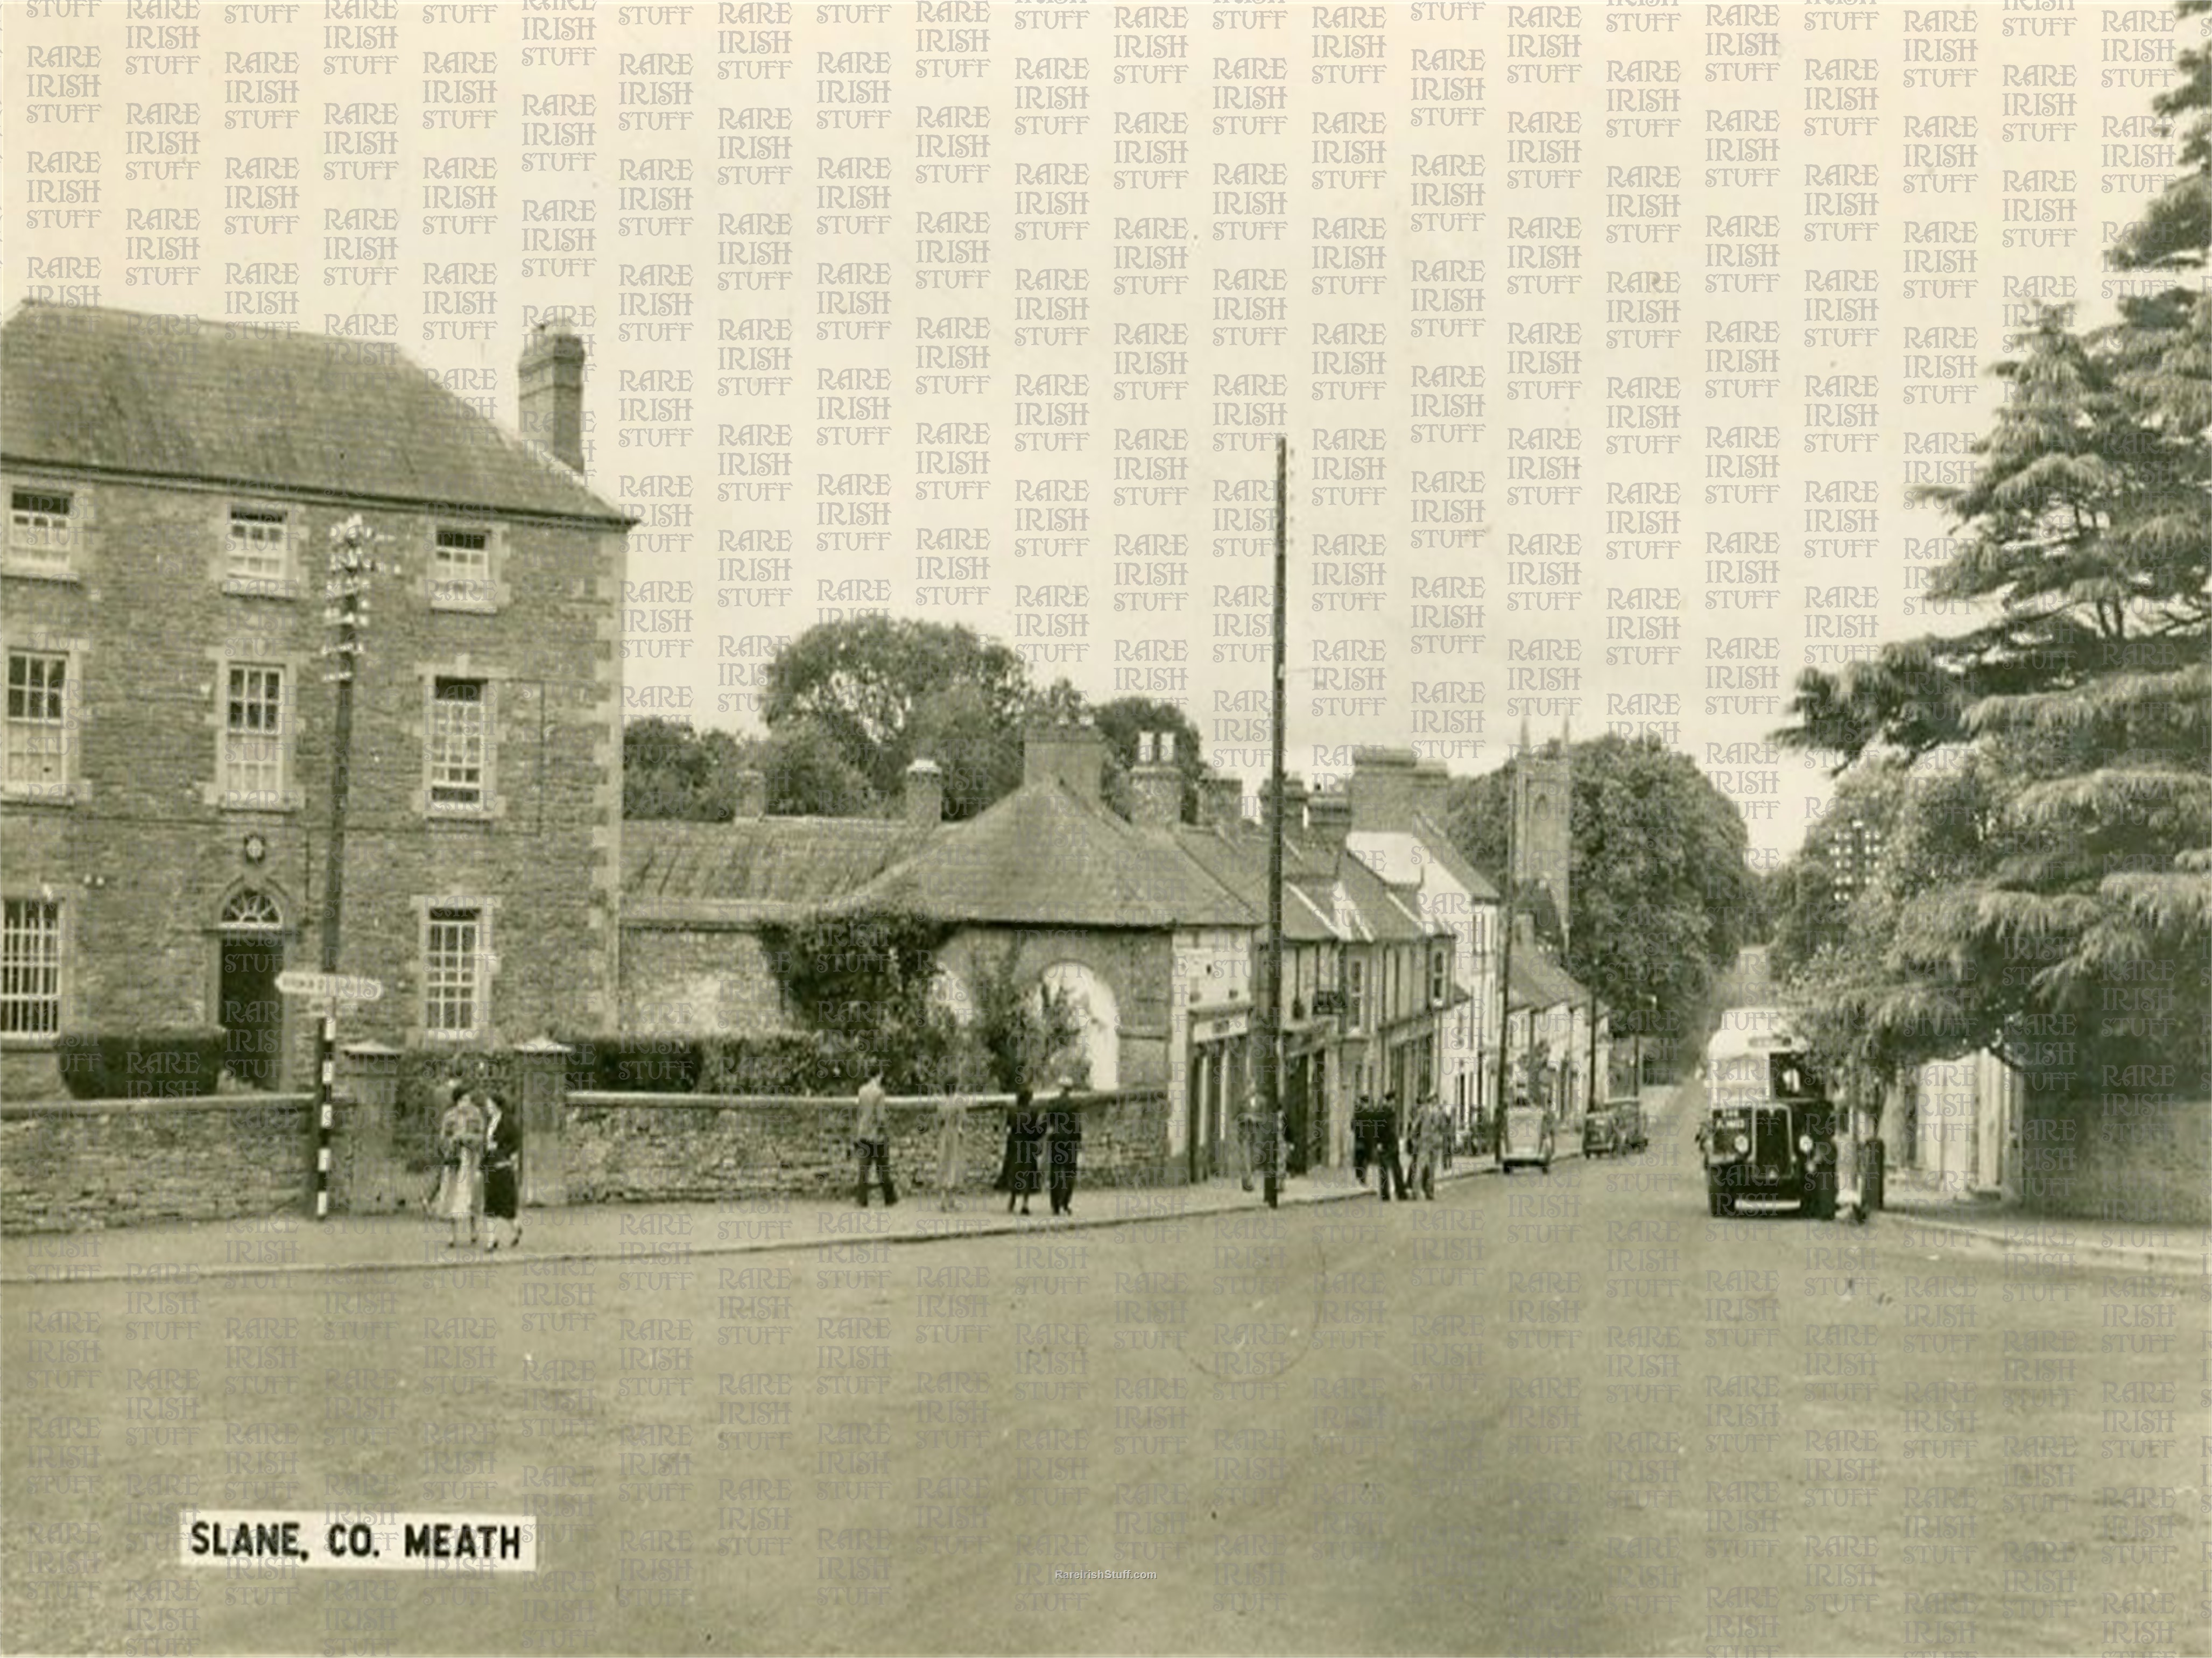 1  Slane  Village   Co.  Meath   Ireland 1950s  Thumbnail0